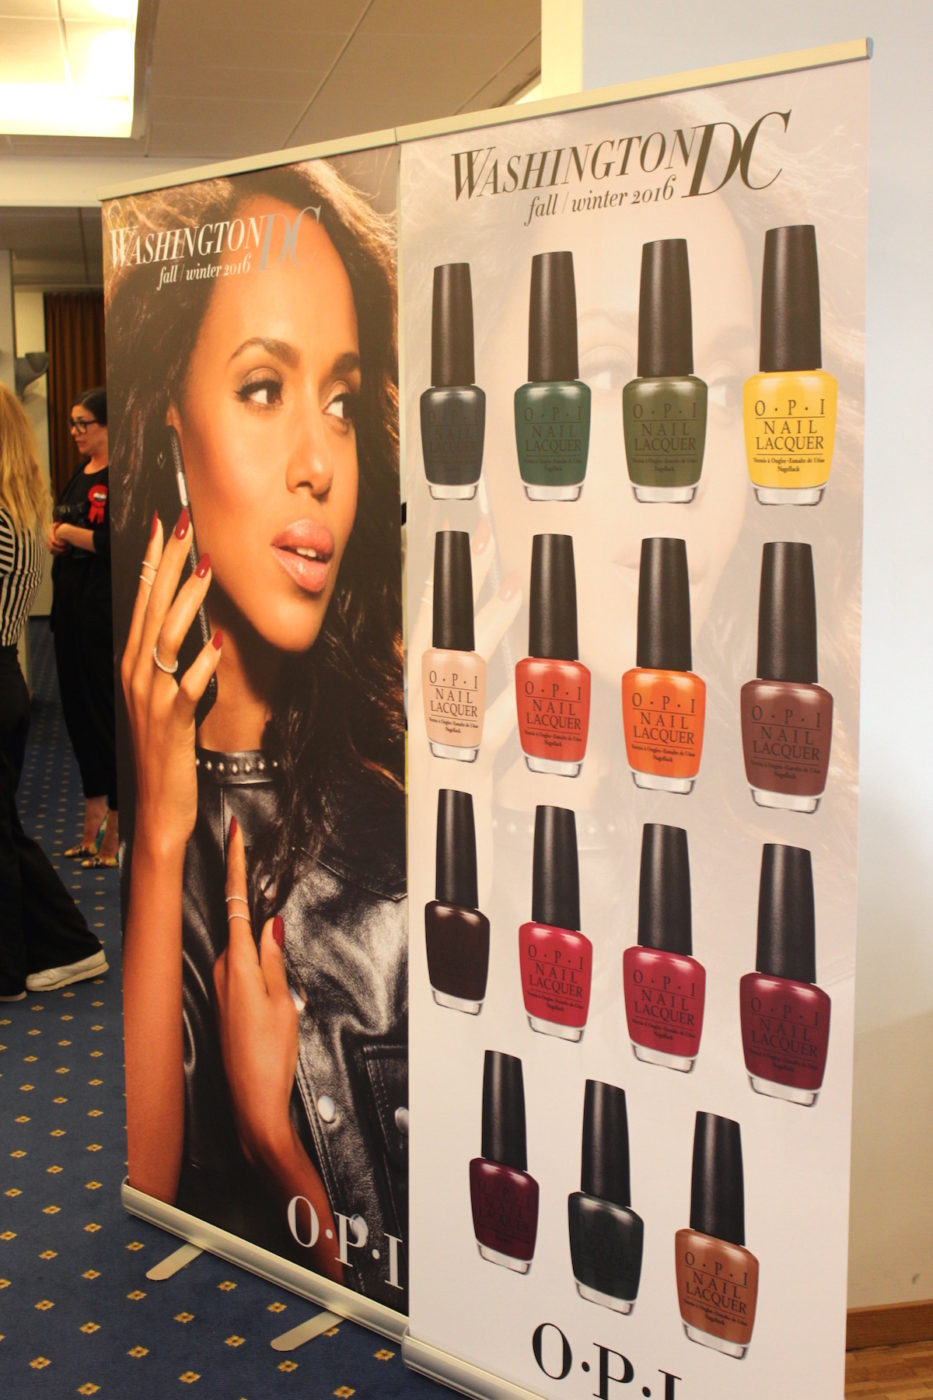 Kerry Washington för Washington DC Elinfagerberg.se